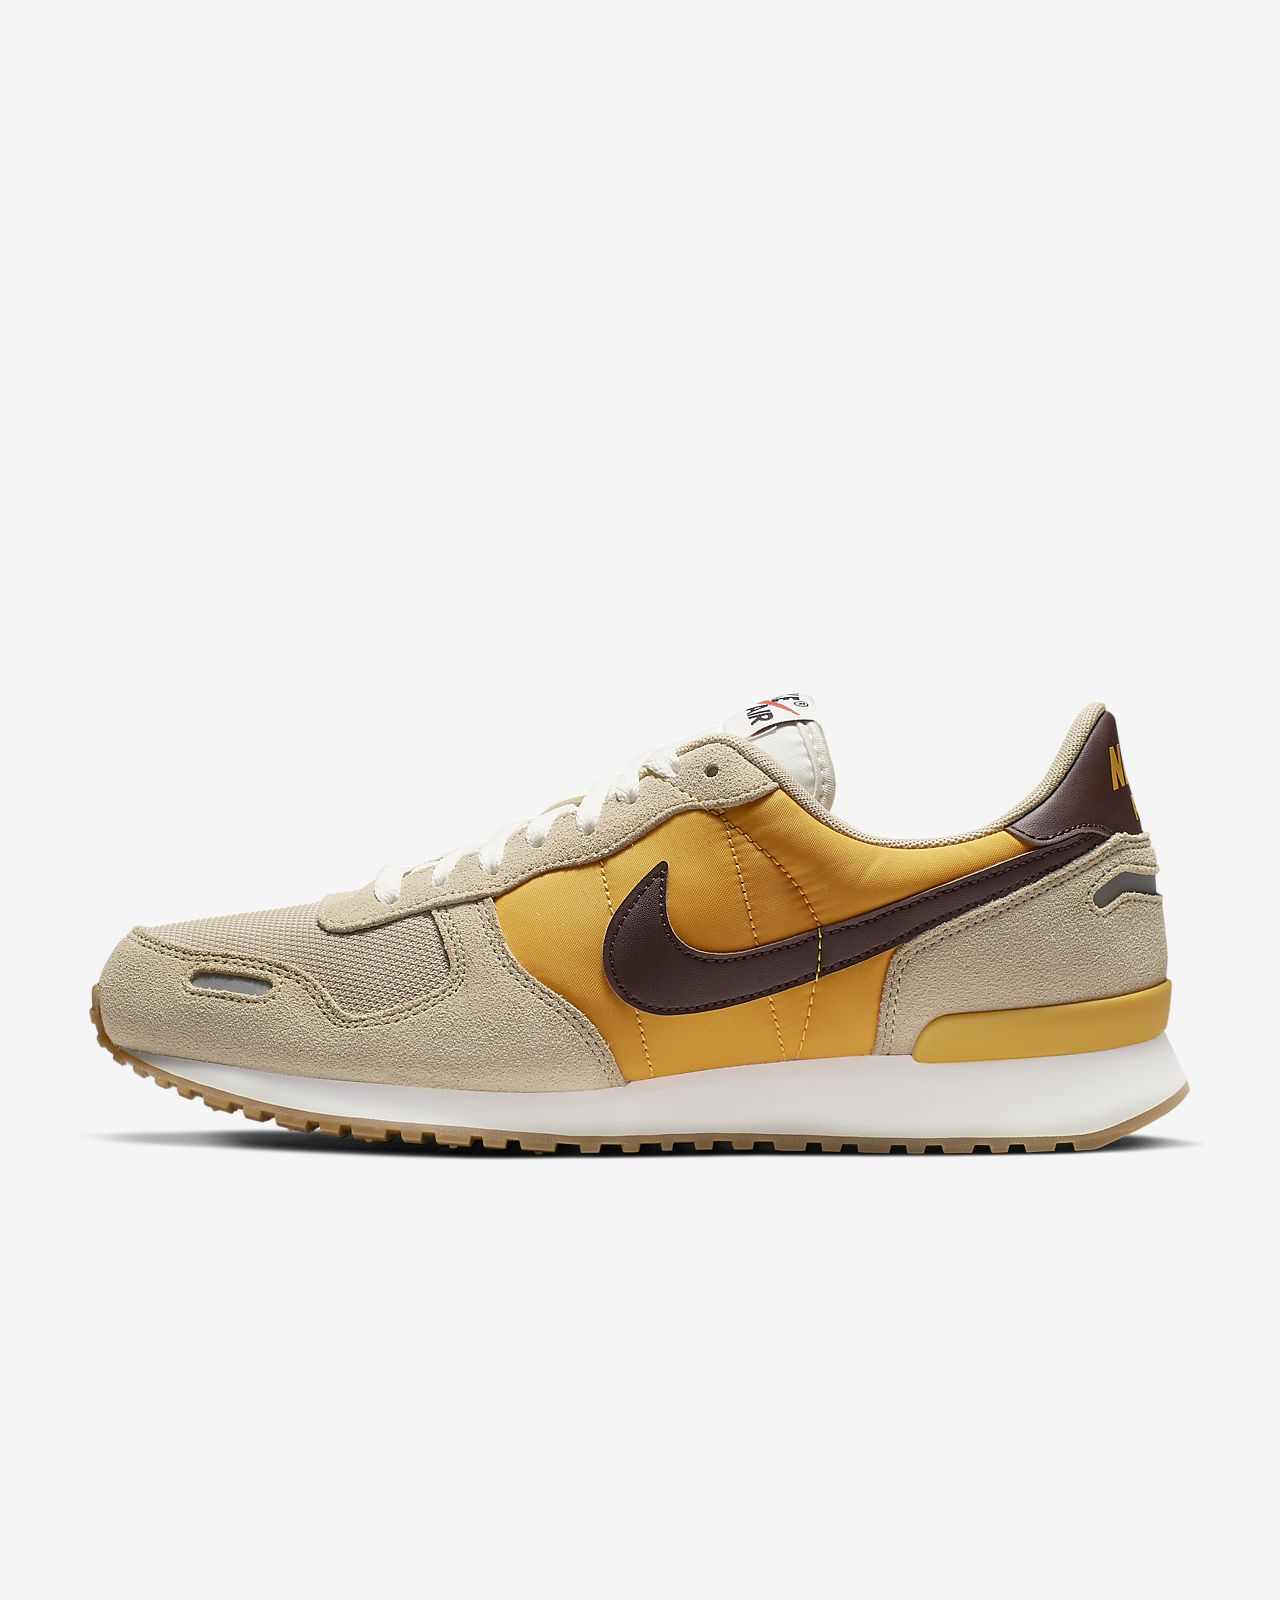 finest selection 4b9a8 d395c Low Resolution Nike Air Vortex Herrenschuh Nike Air Vortex Herrenschuh